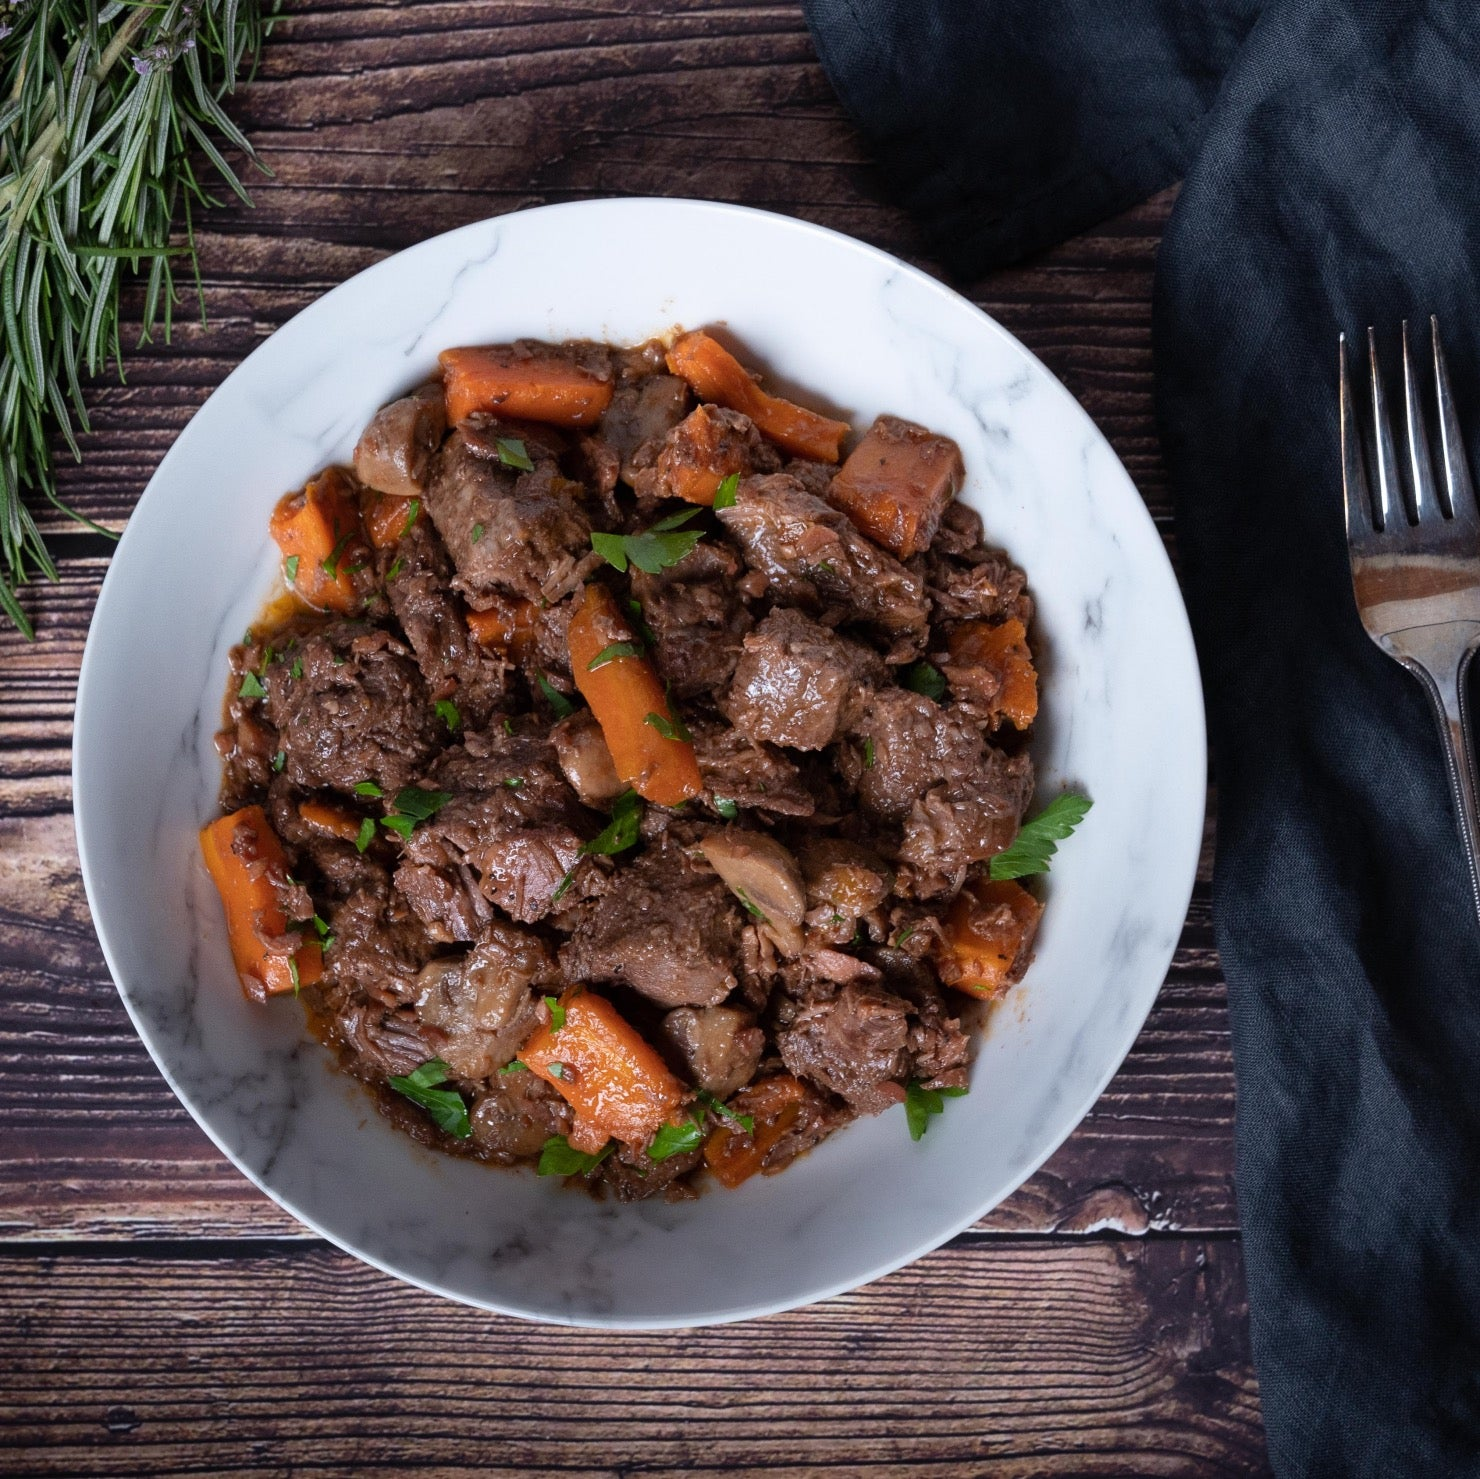 Ready to eat Beef Bourguignon in a plate